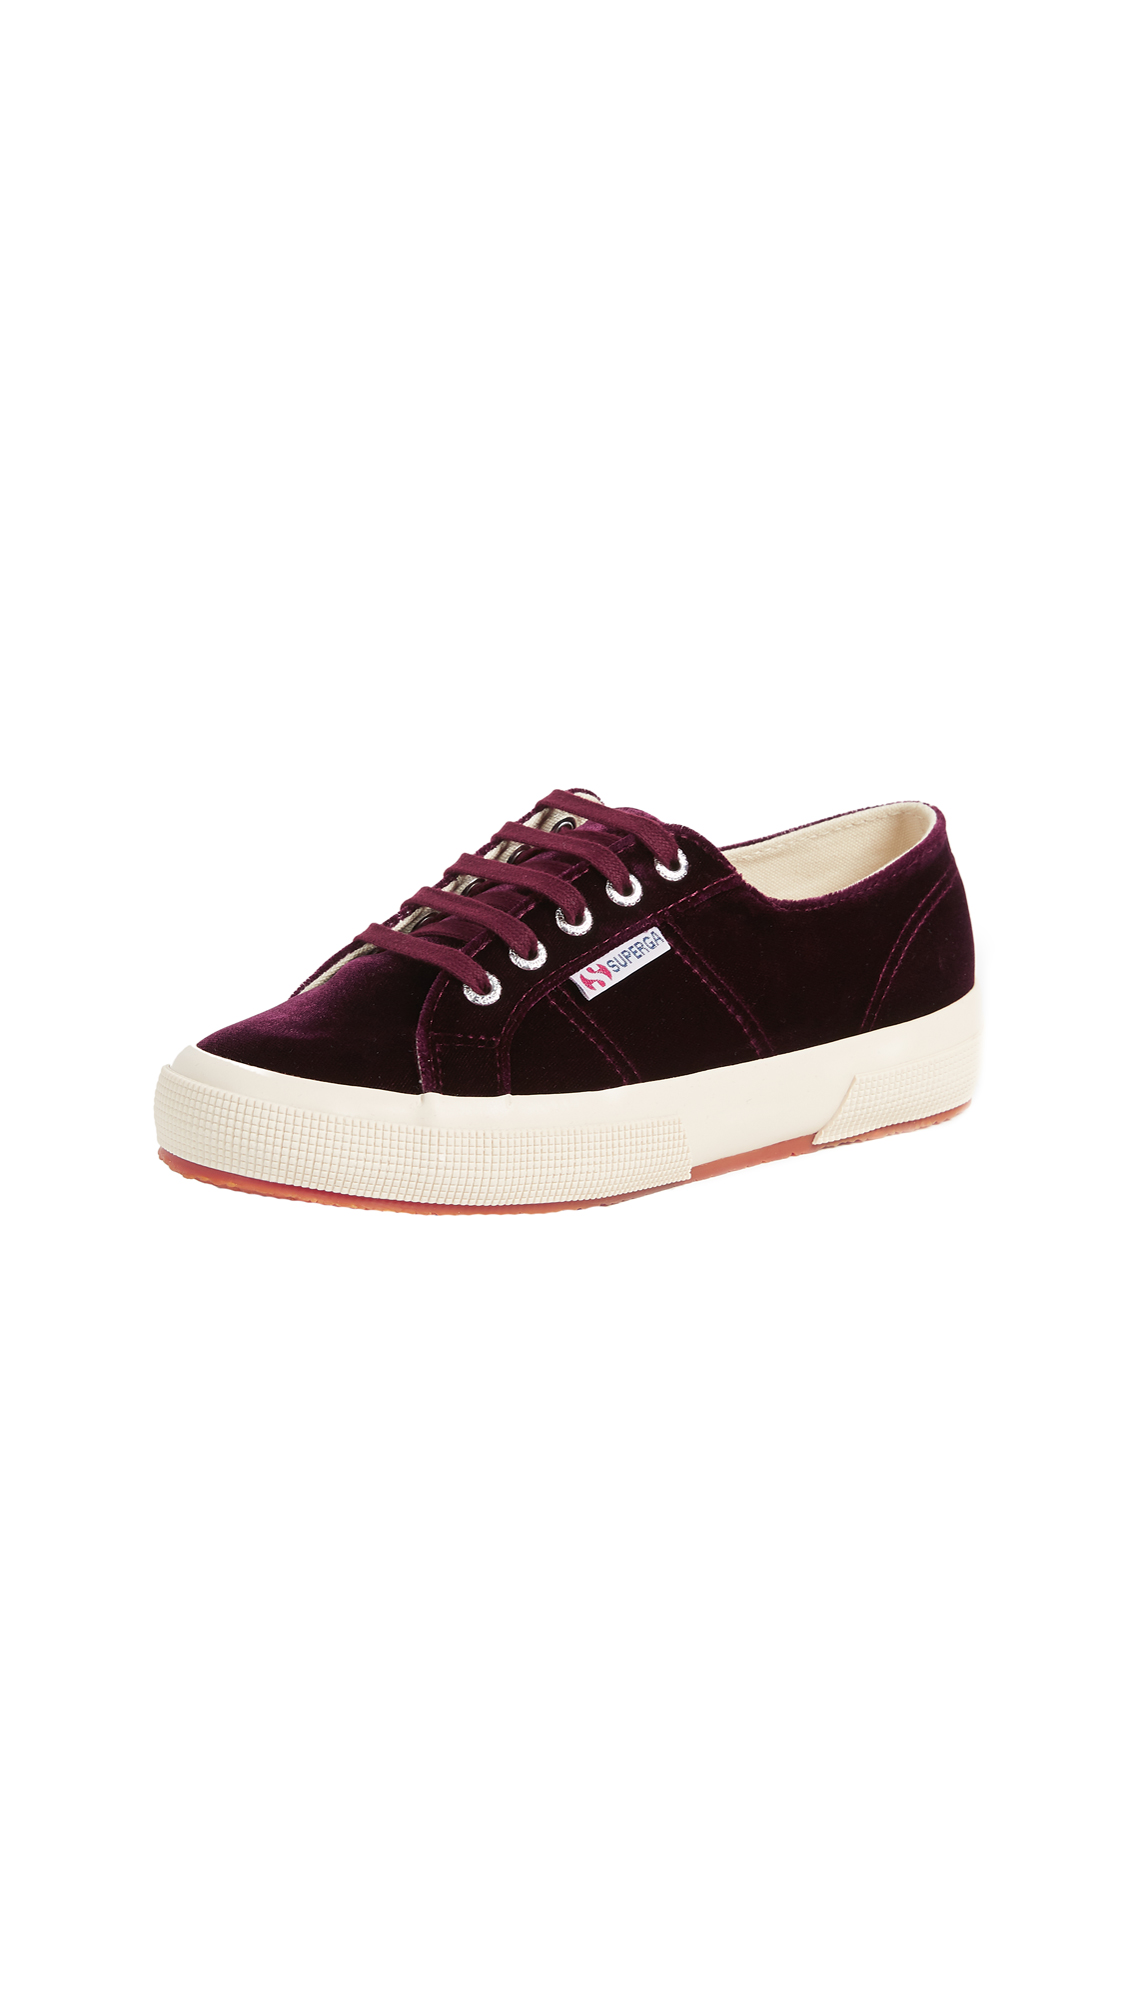 Superga 2750 Velvet Sneakers - Bordeaux